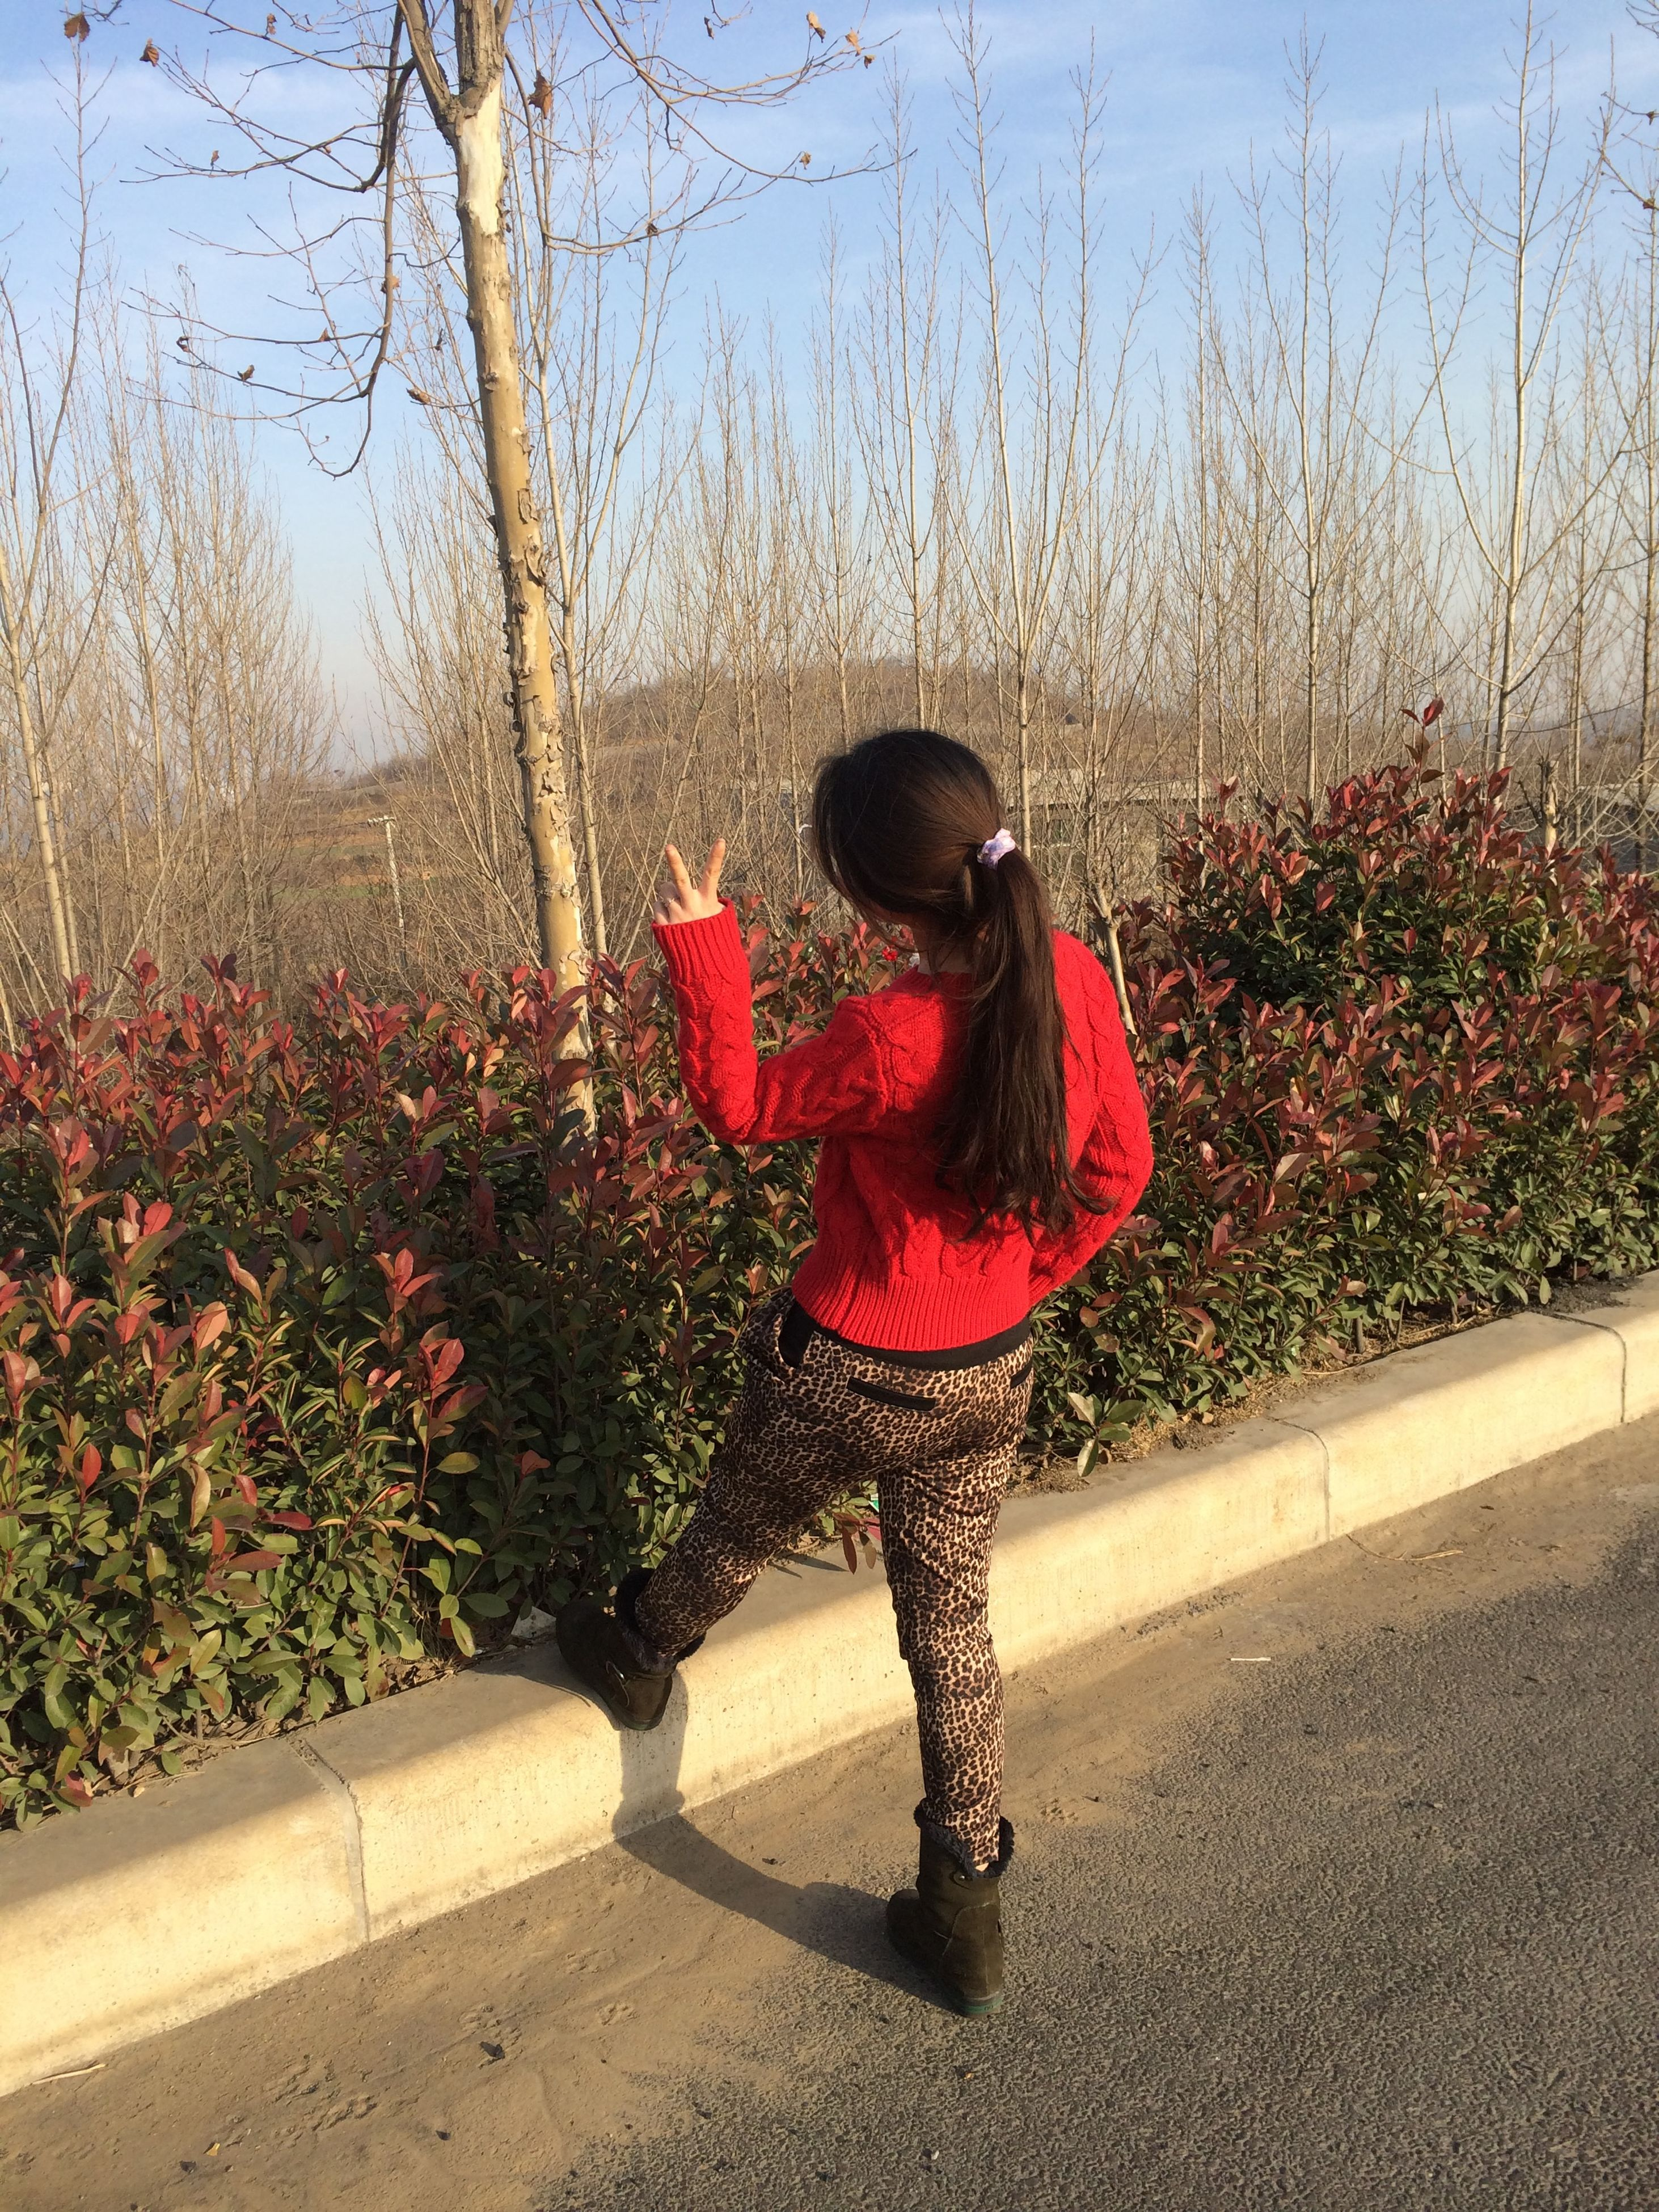 red, childhood, full length, standing, plant, grass, day, outdoors, high angle view, tree, sunlight, safety, elementary age, lifestyles, protection, shadow, park - man made space, street